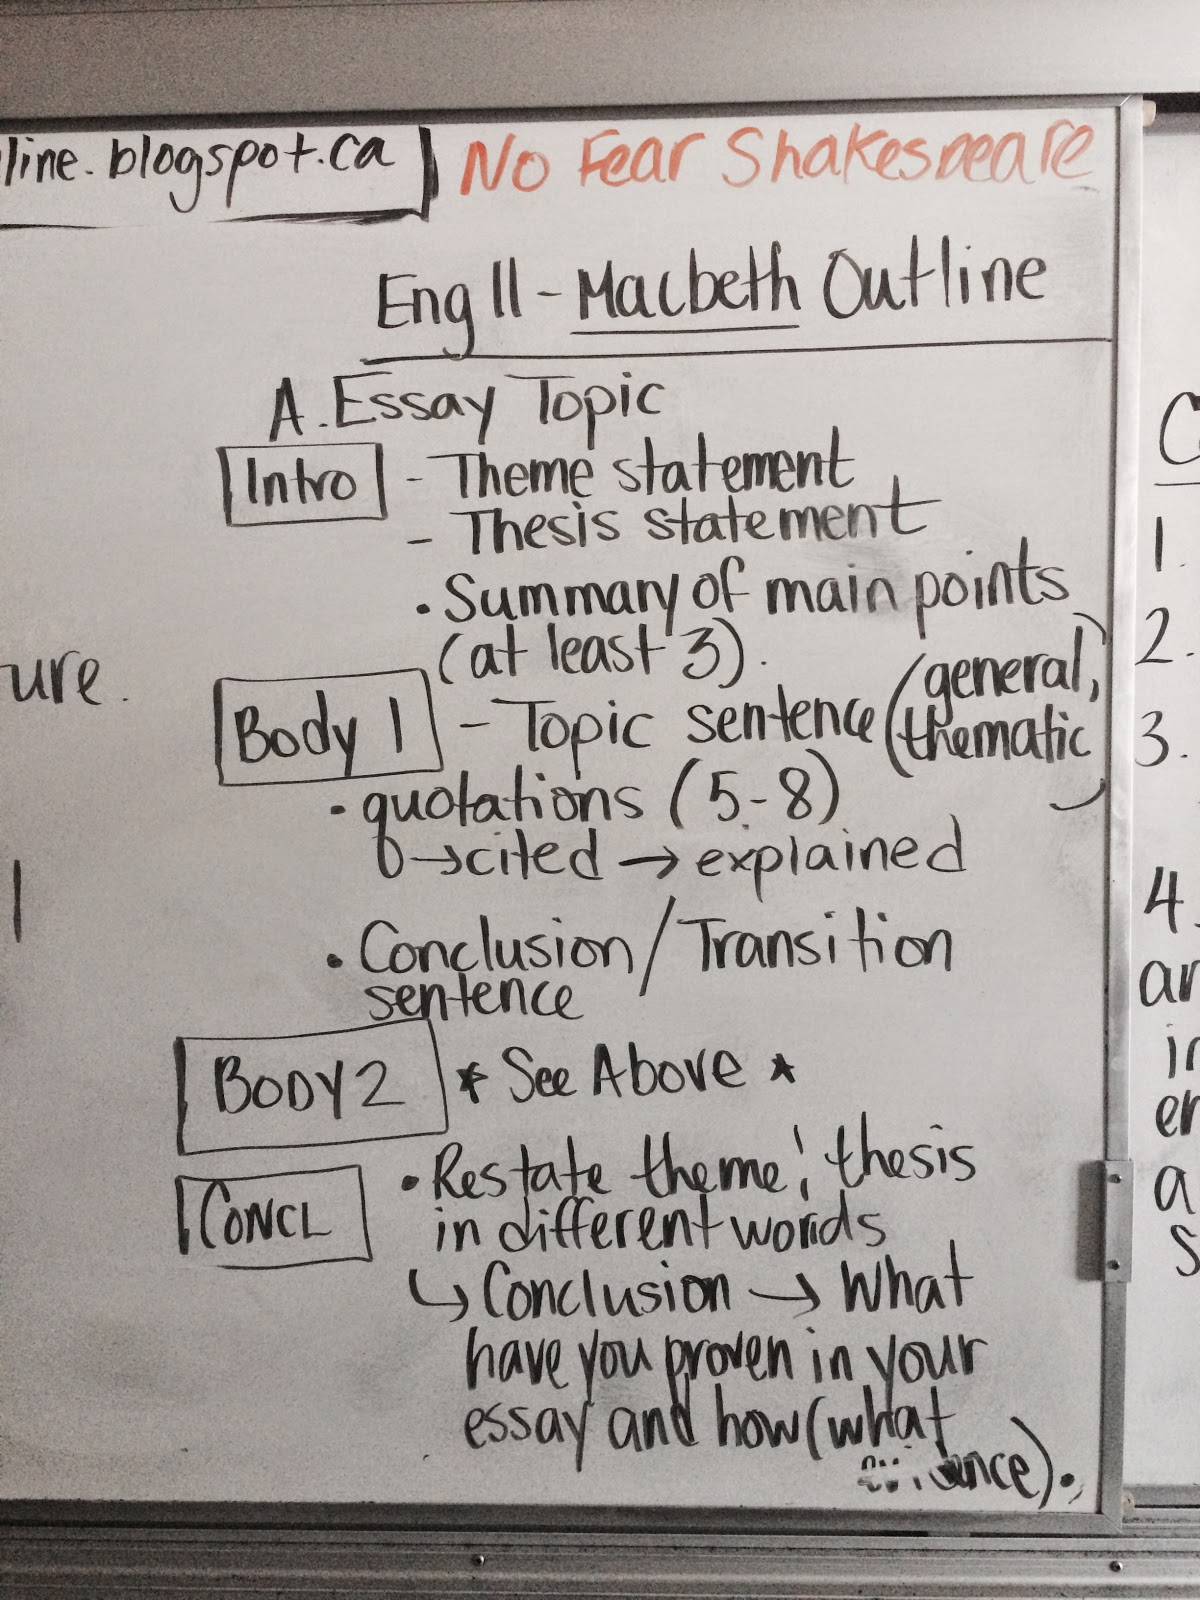 romeo and juliet essay outline romeo and juliet balcony scene  macpherson online english 10 romeo juliet 1 act v sc i iii 2 answer questions due